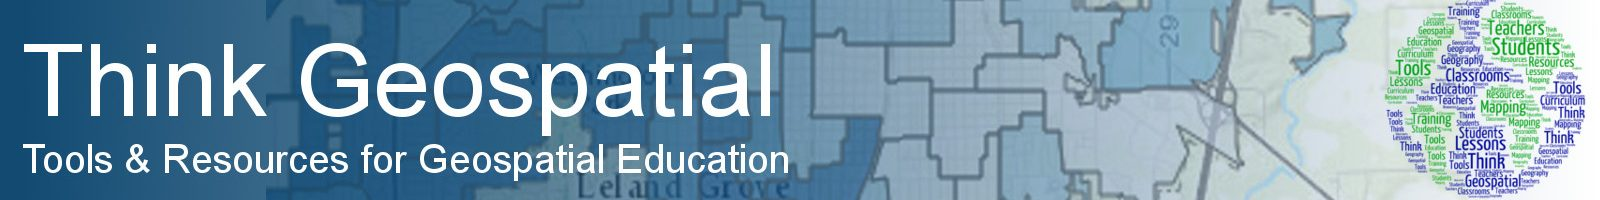 Teachers, Start the school year with a FREE ArcGIS Online school